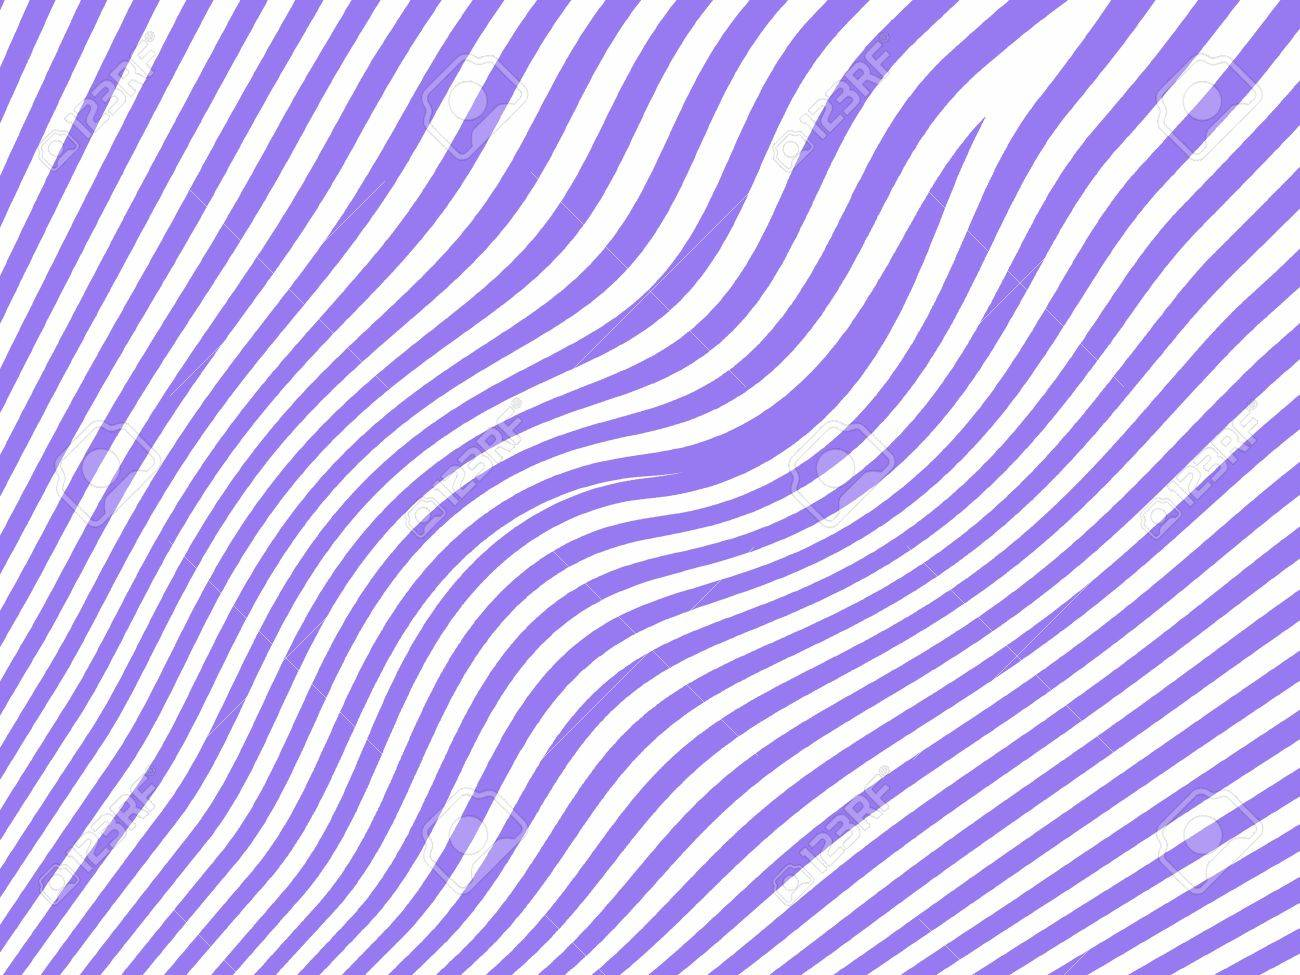 Lavender blue striped background with straight and curved lines Stock Photo - 13562602